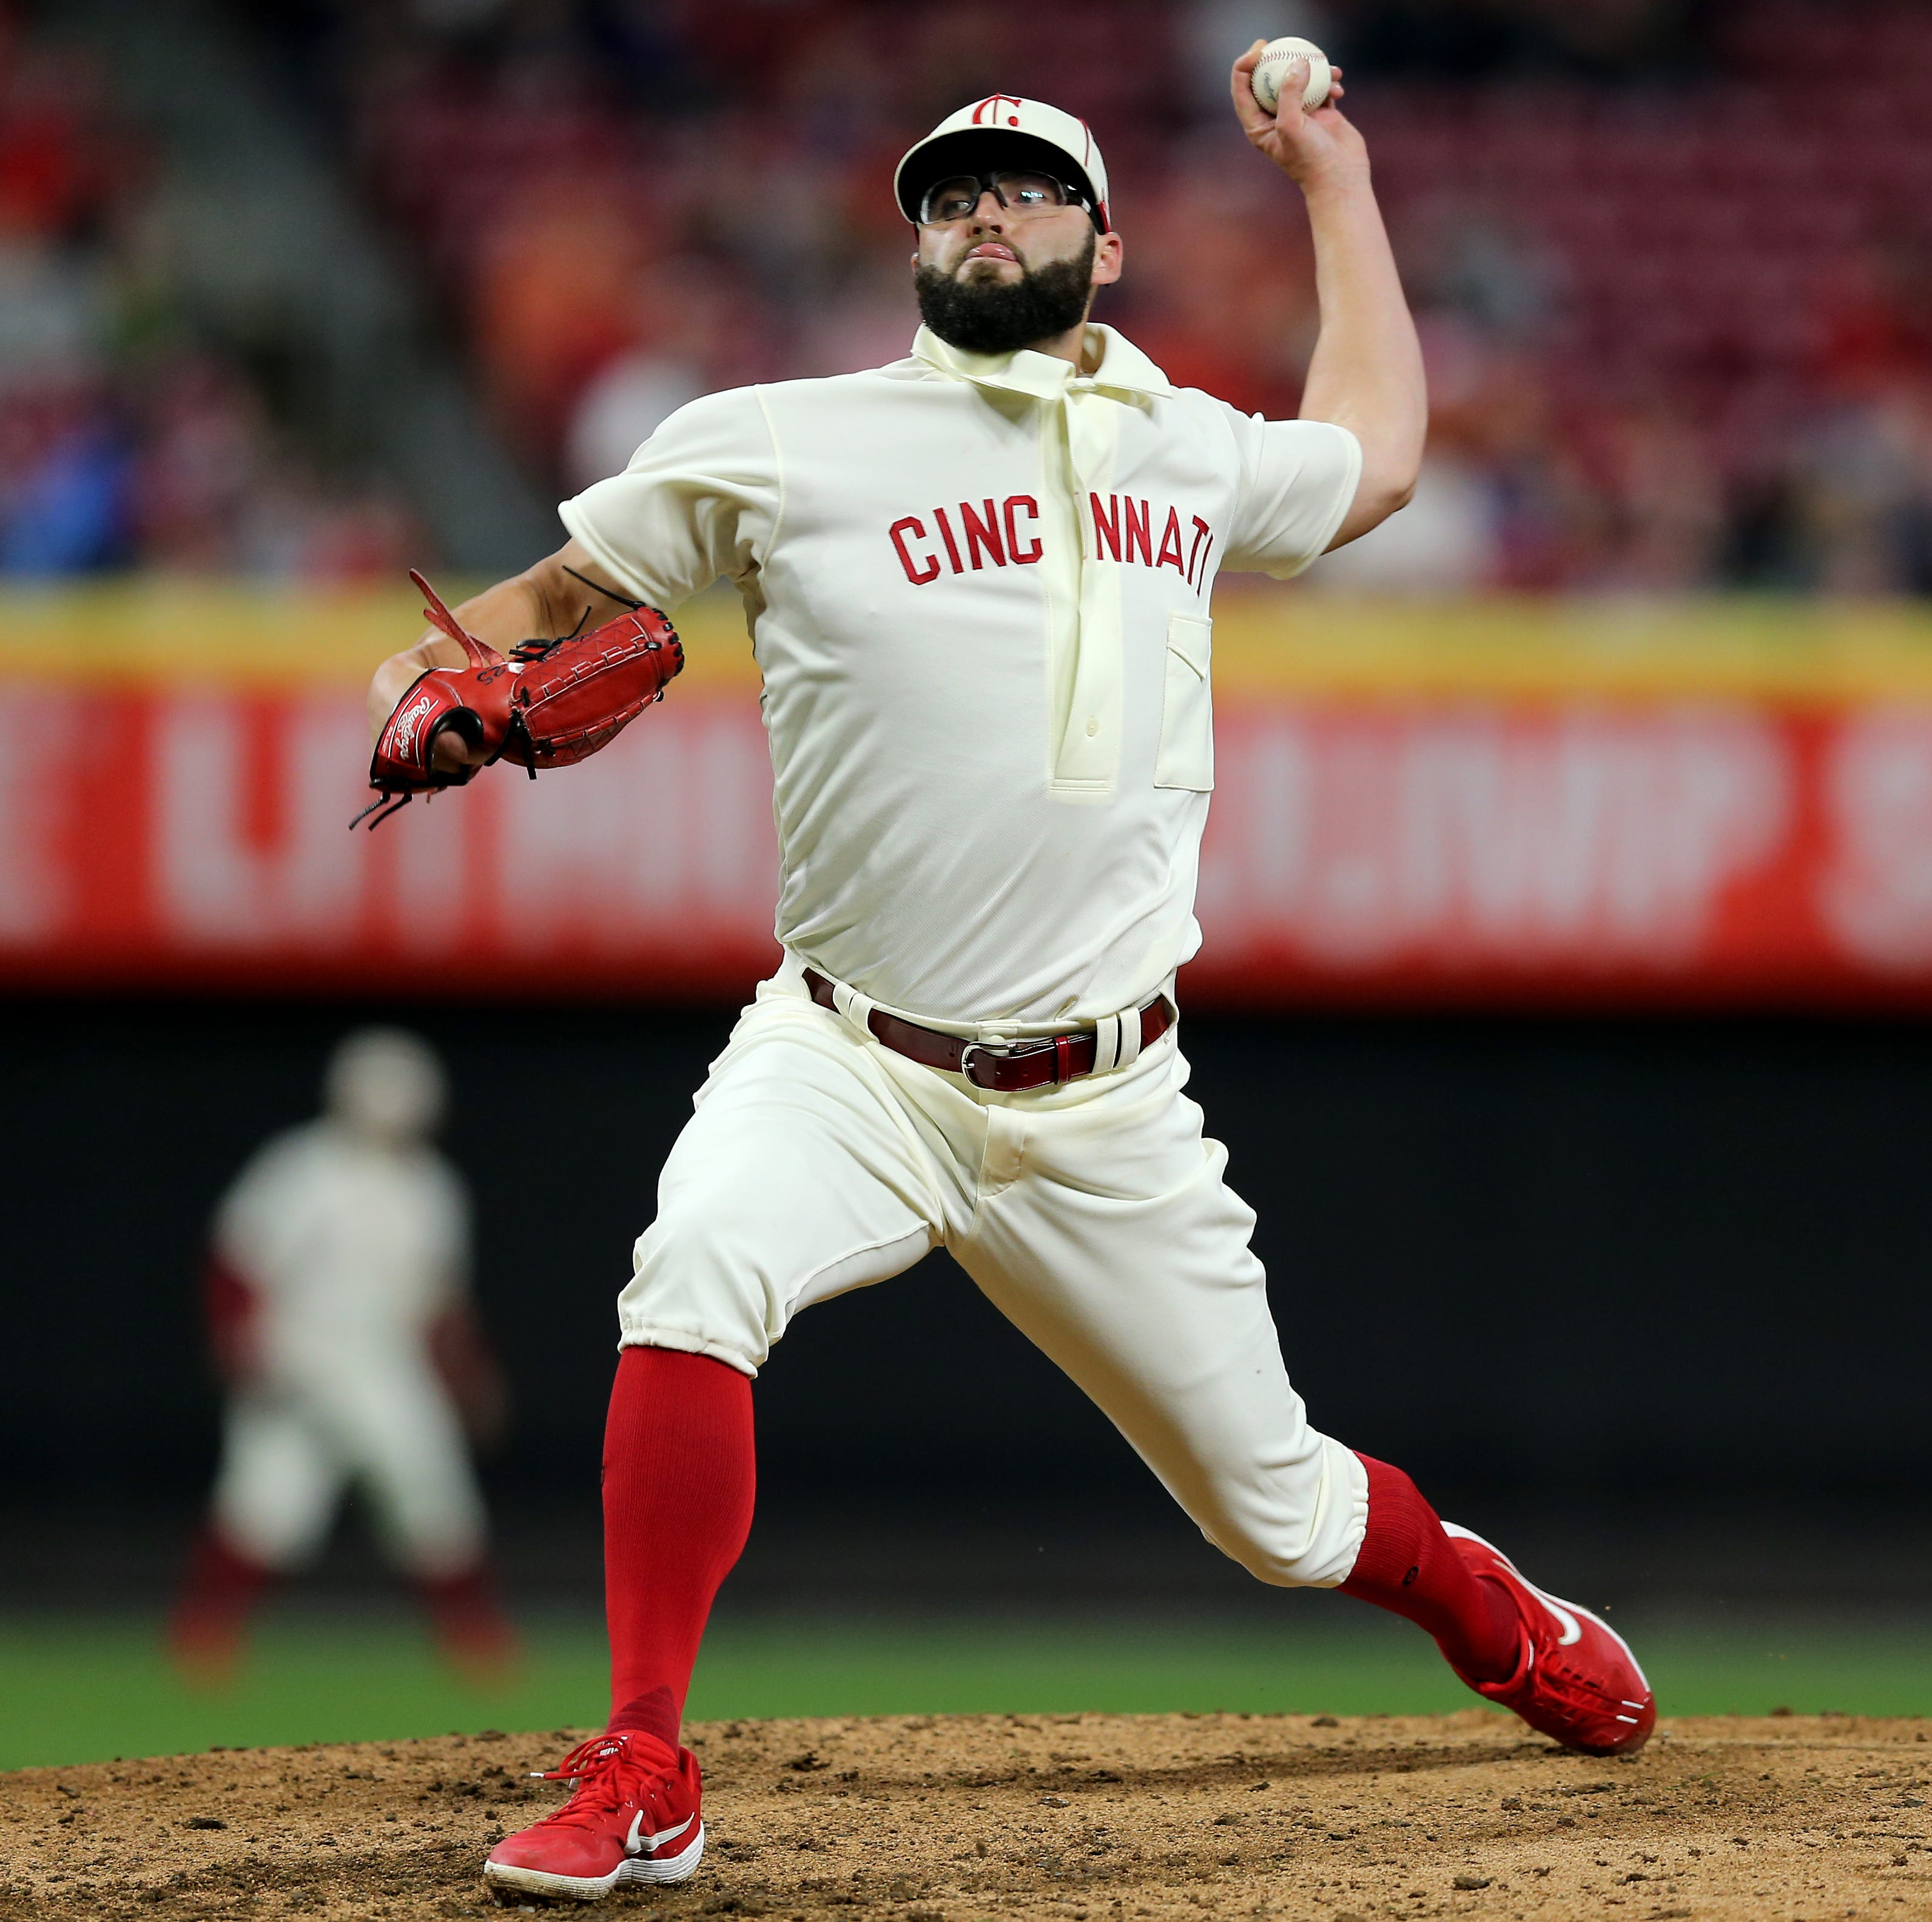 Cincinnati Reds add lefty Cody Reed to the bullpen before Los Angeles Dodgers series